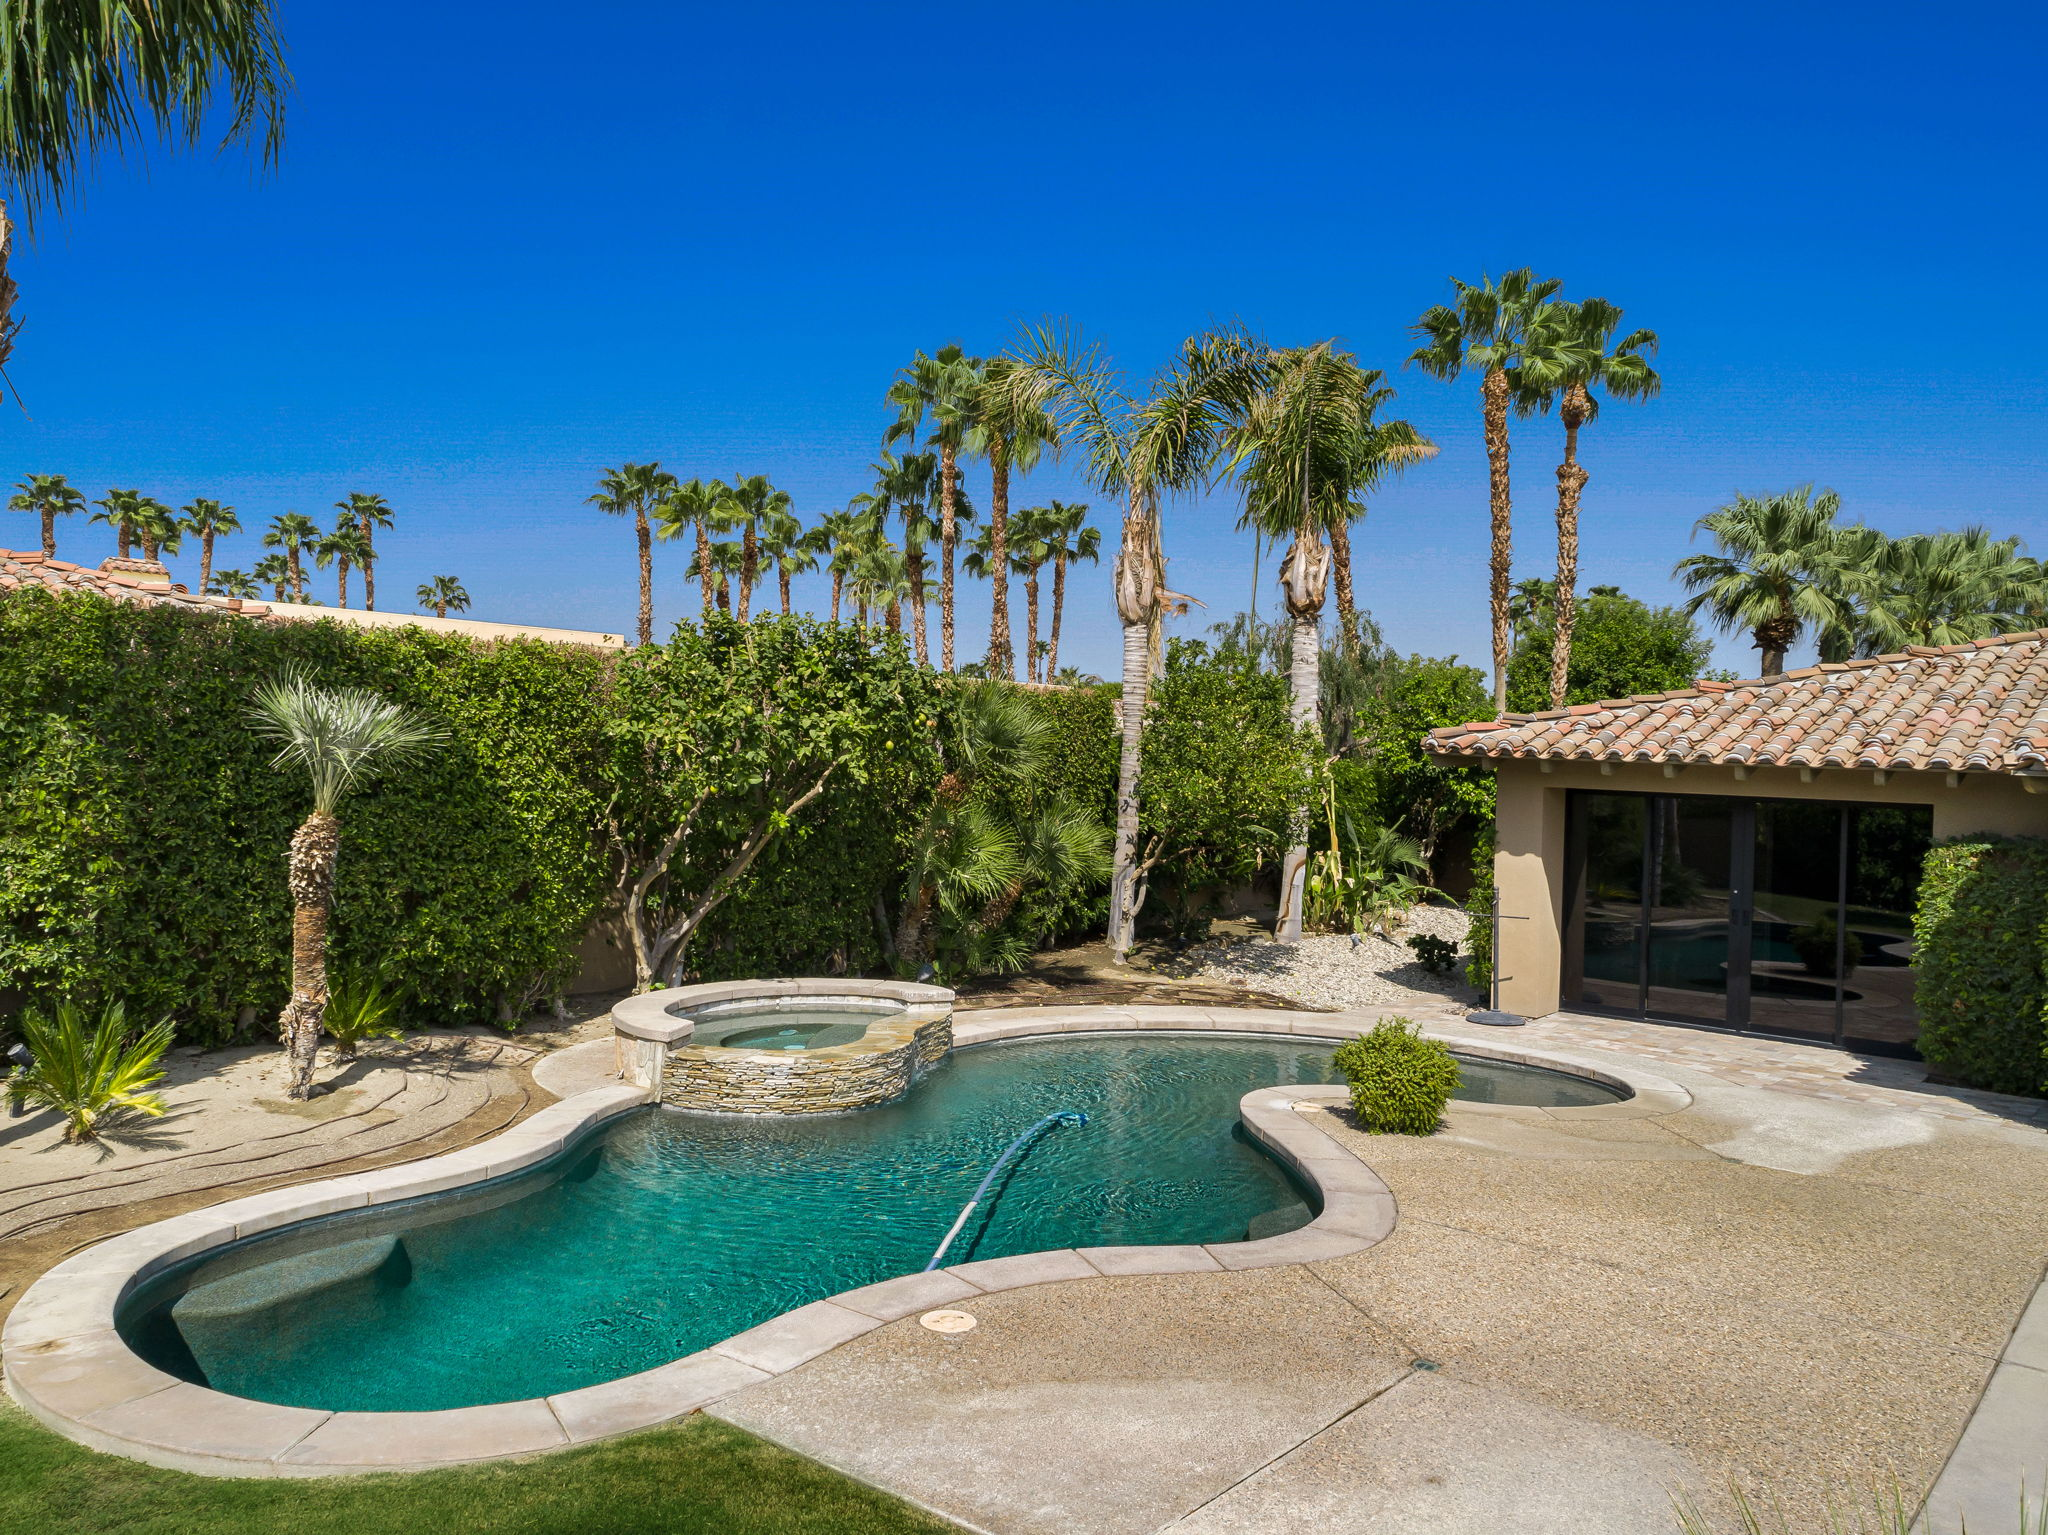 North Lawn , Pool/Spa and Patio